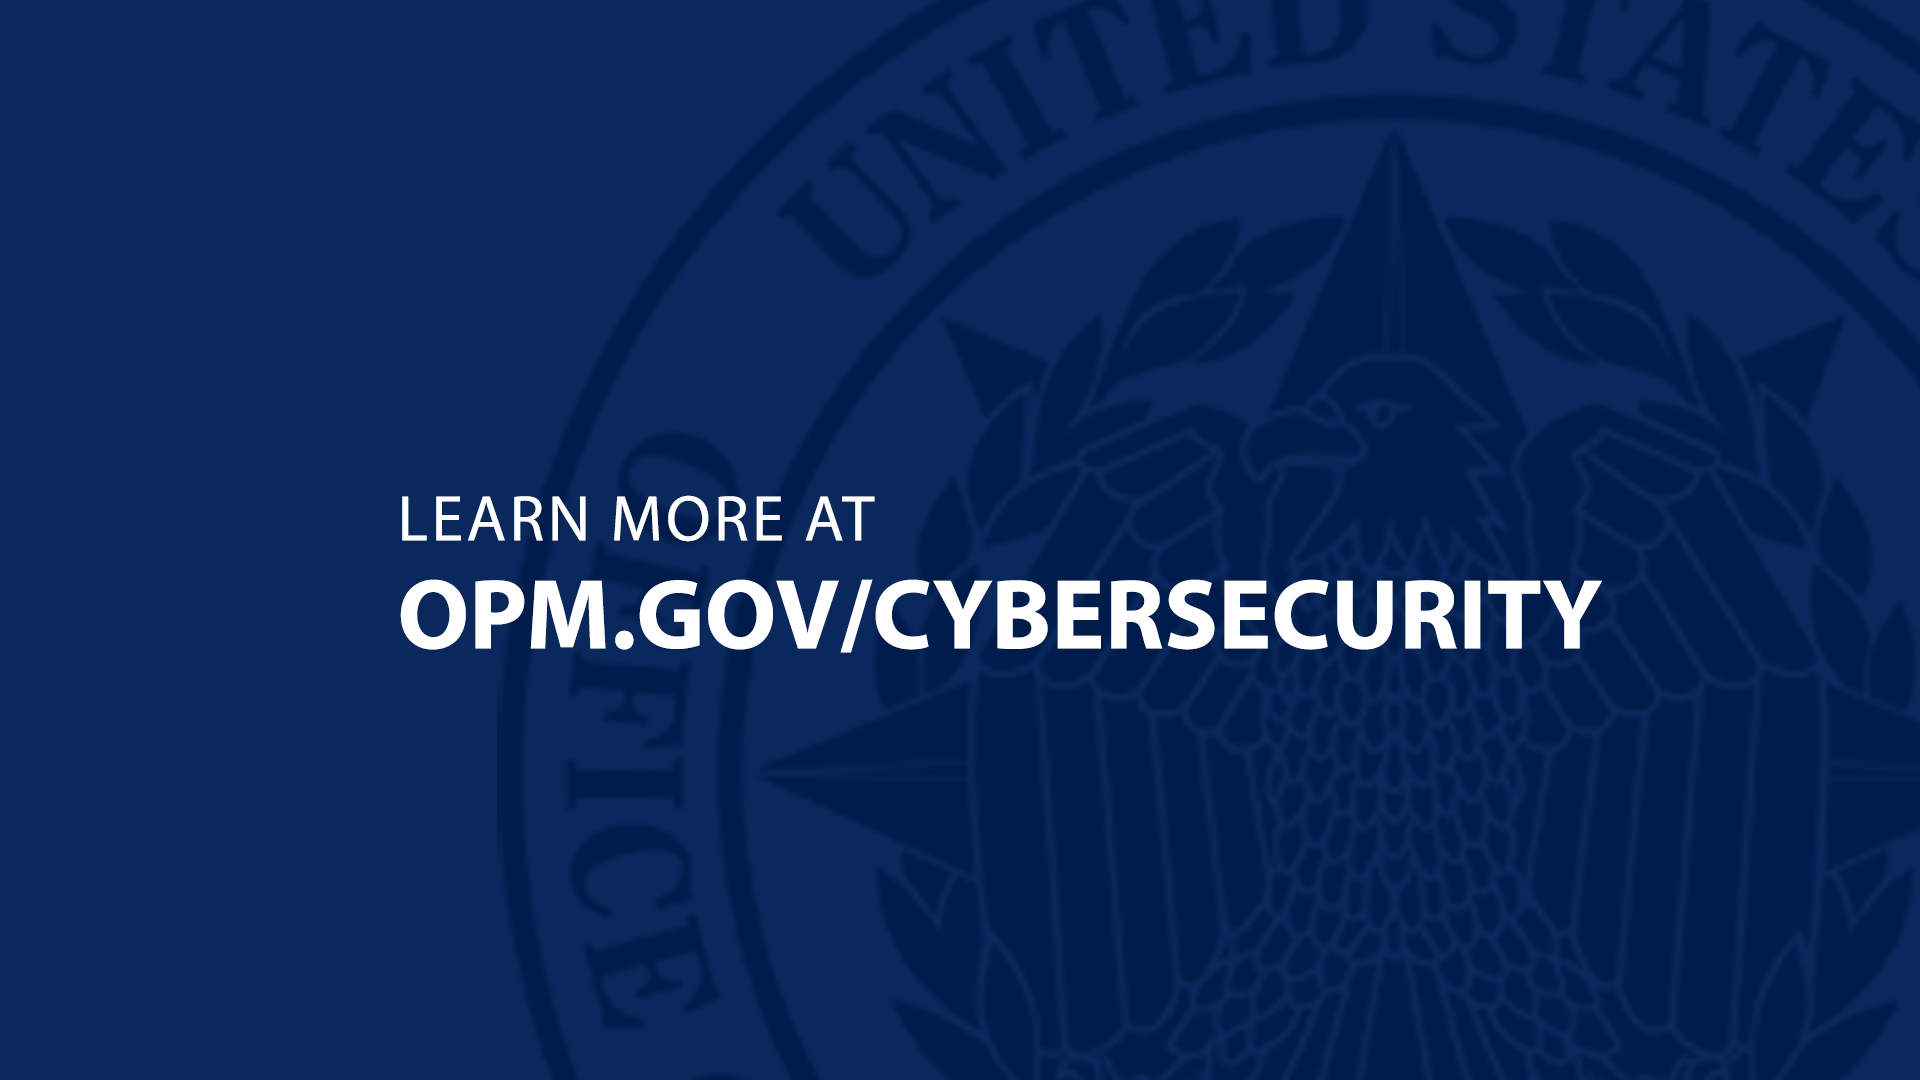 - Graphic with blue background. OPM logo. Headline: LEARN MORE AT. Subhead: OPM.GOV/CYBERSECURITY.